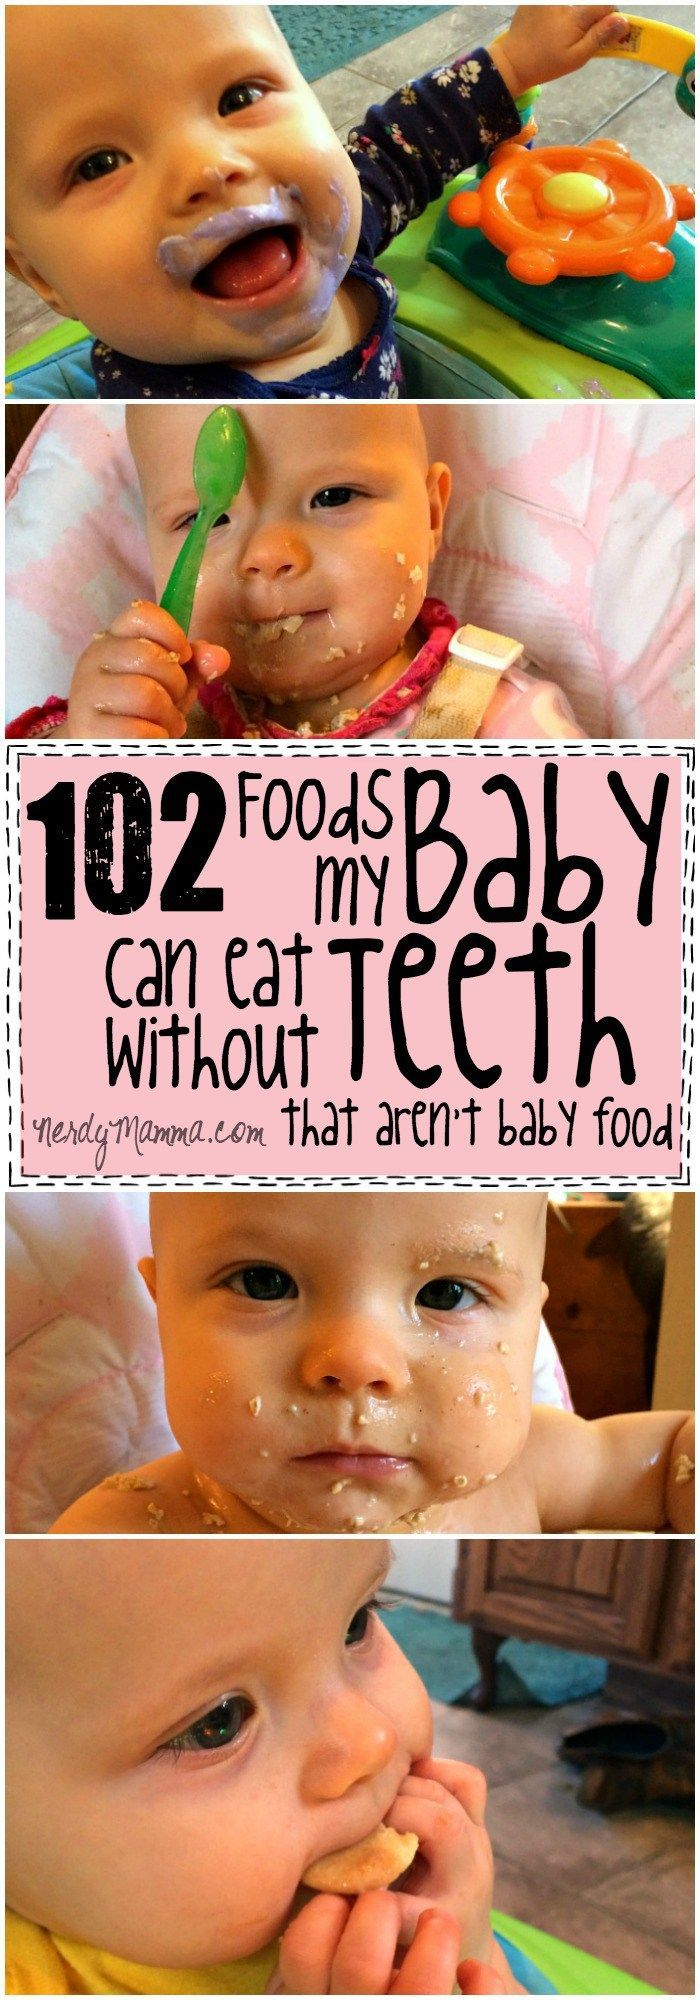 Wow! This list of 102 Different food ideas for babies without teeth is pretty awesome. I didn't know they could eat all that before they got their first tooth!